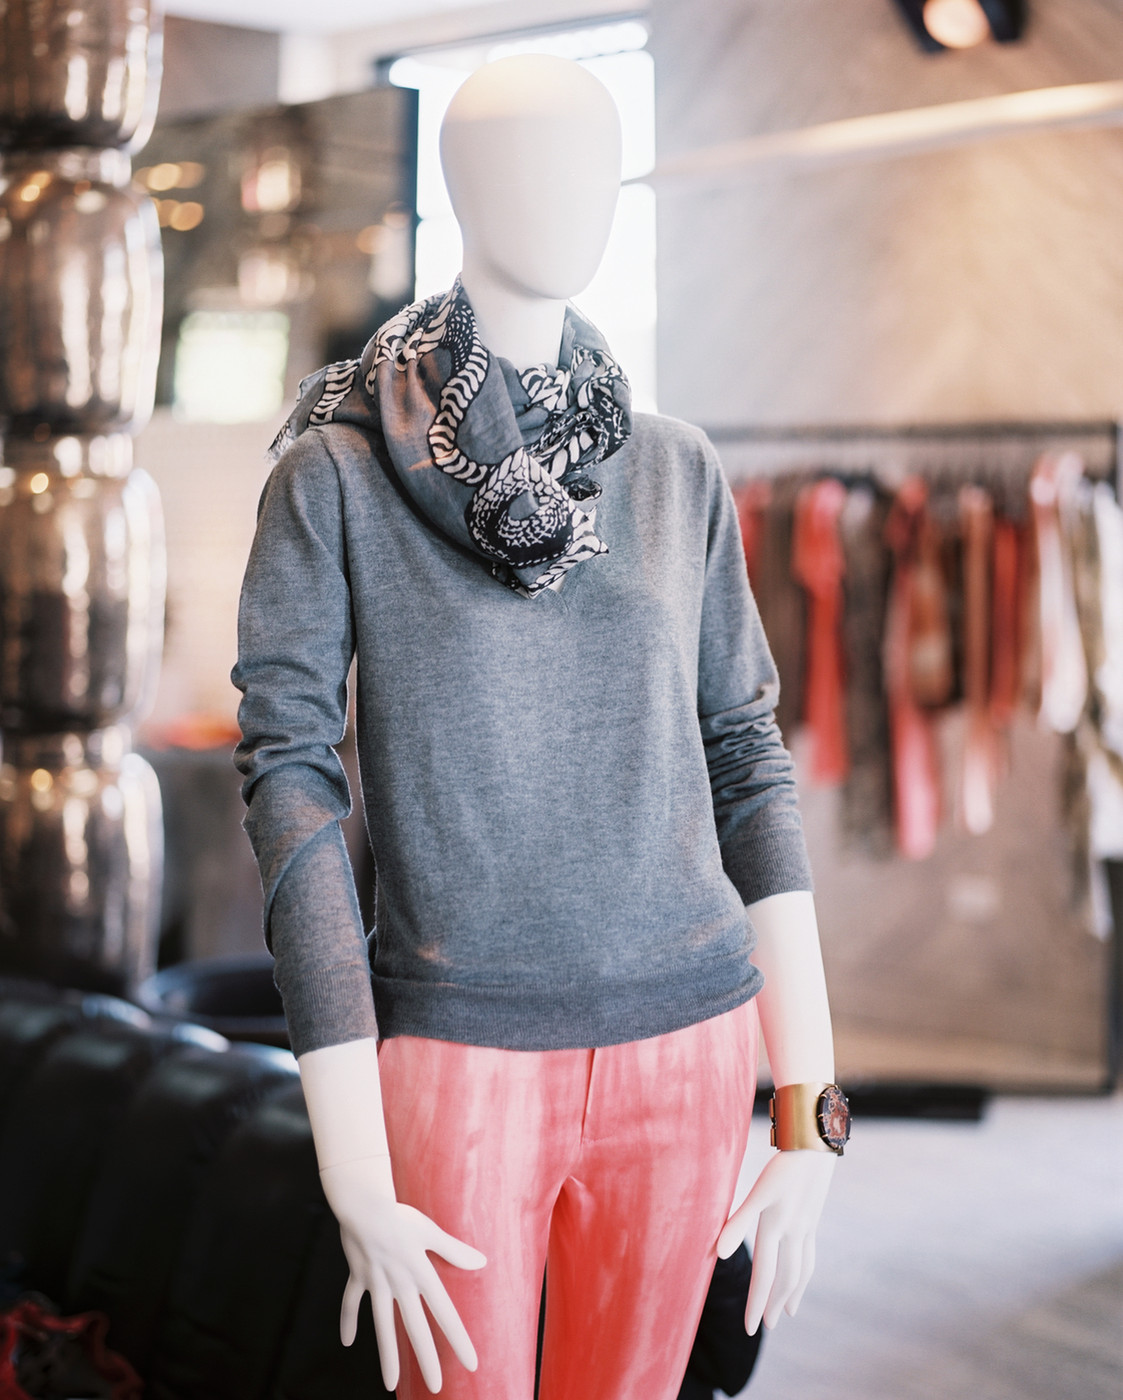 Clothing Mannequin Photos Design Ideas Remodel And